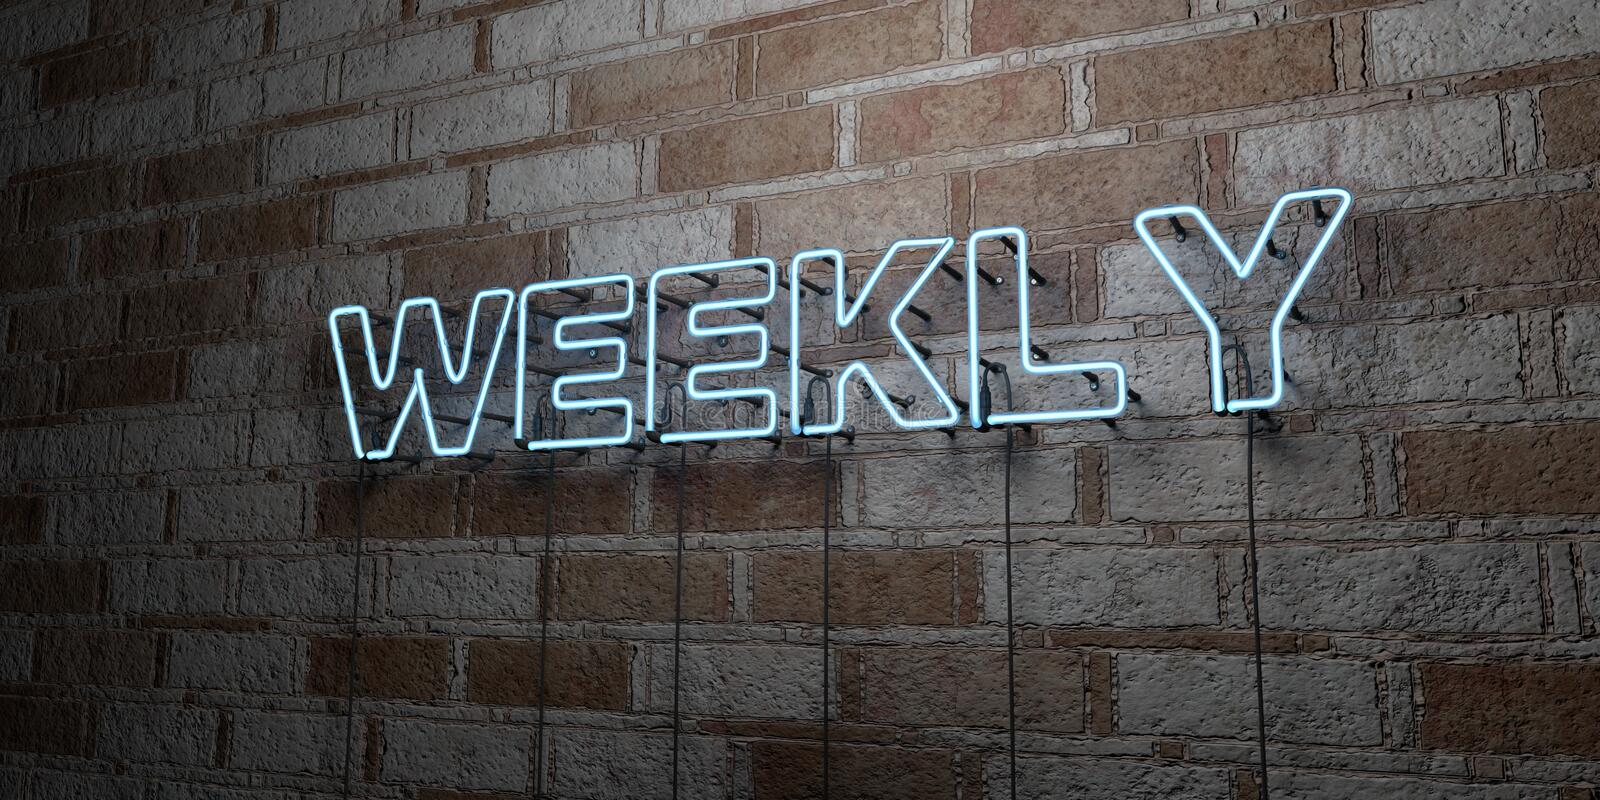 WEEKLY - Glowing Neon Sign on stonework wall - 3D rendered royalty free stock illustration. Can be used for online banner ads and direct mailers royalty free illustration